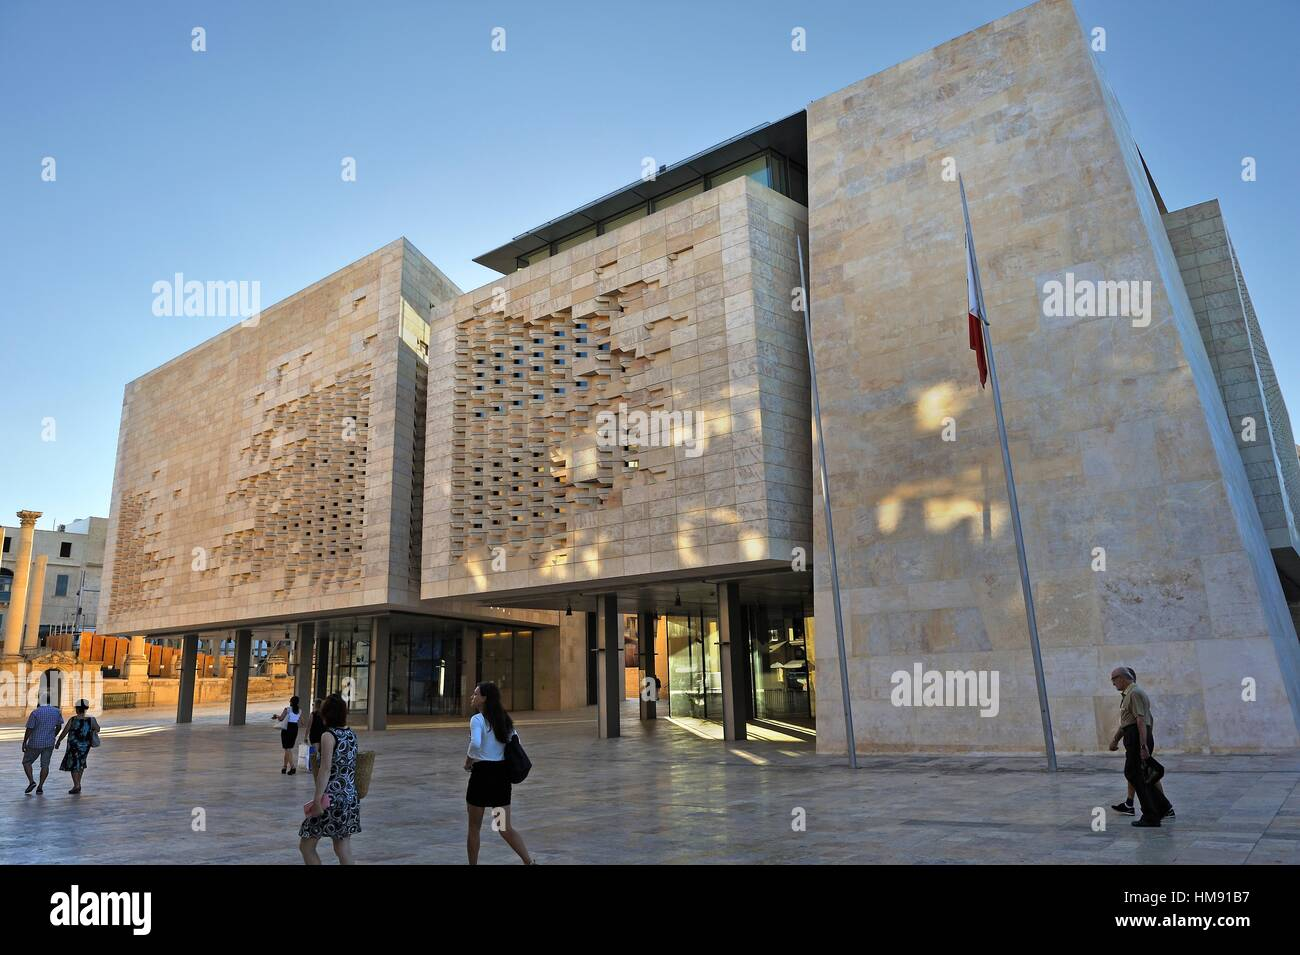 City Of South Gate >> new Parliament House designed by Renzo Piano, City Gate project Stock Photo, Royalty Free Image ...